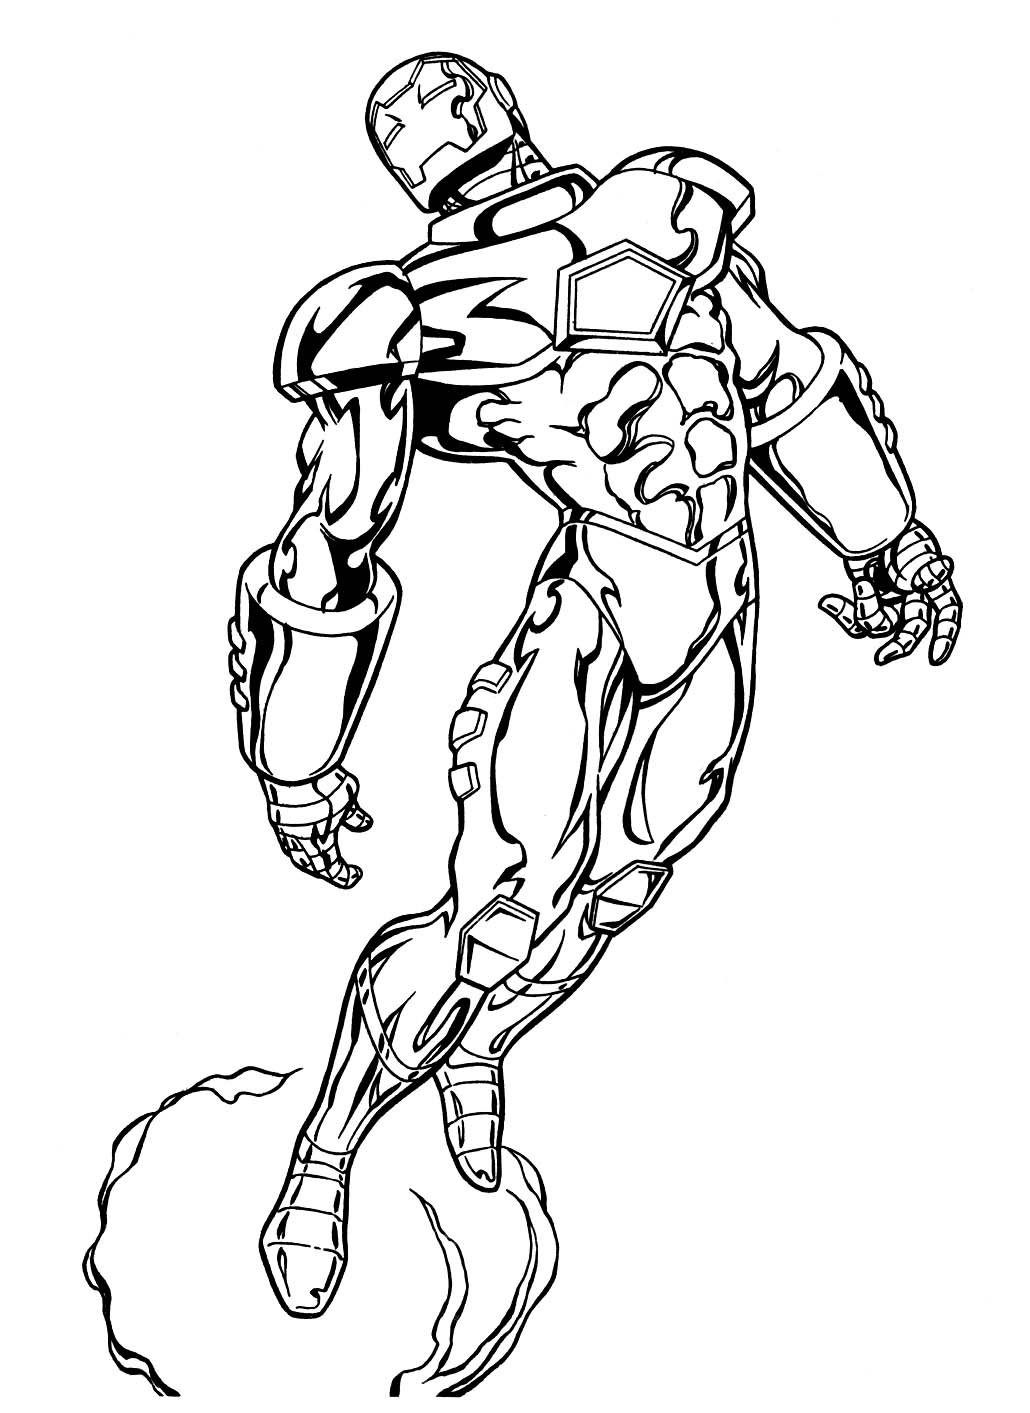 marvel heros coloring pages - photo#27